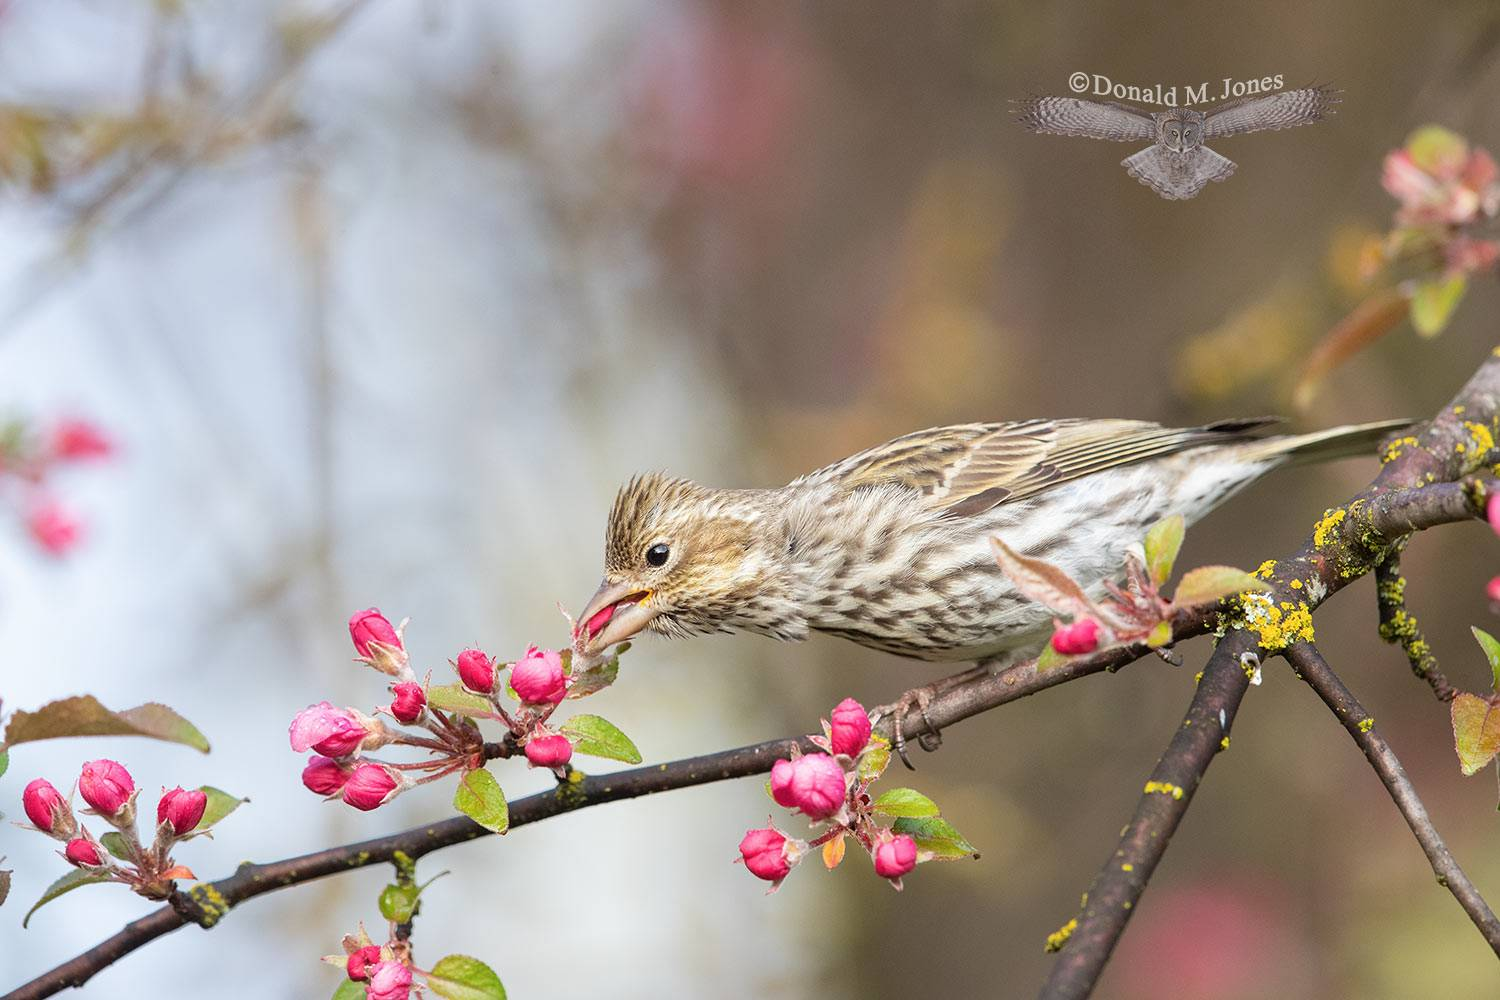 May 5 Female Cassin's Finch eating Crab-apple flower petals.